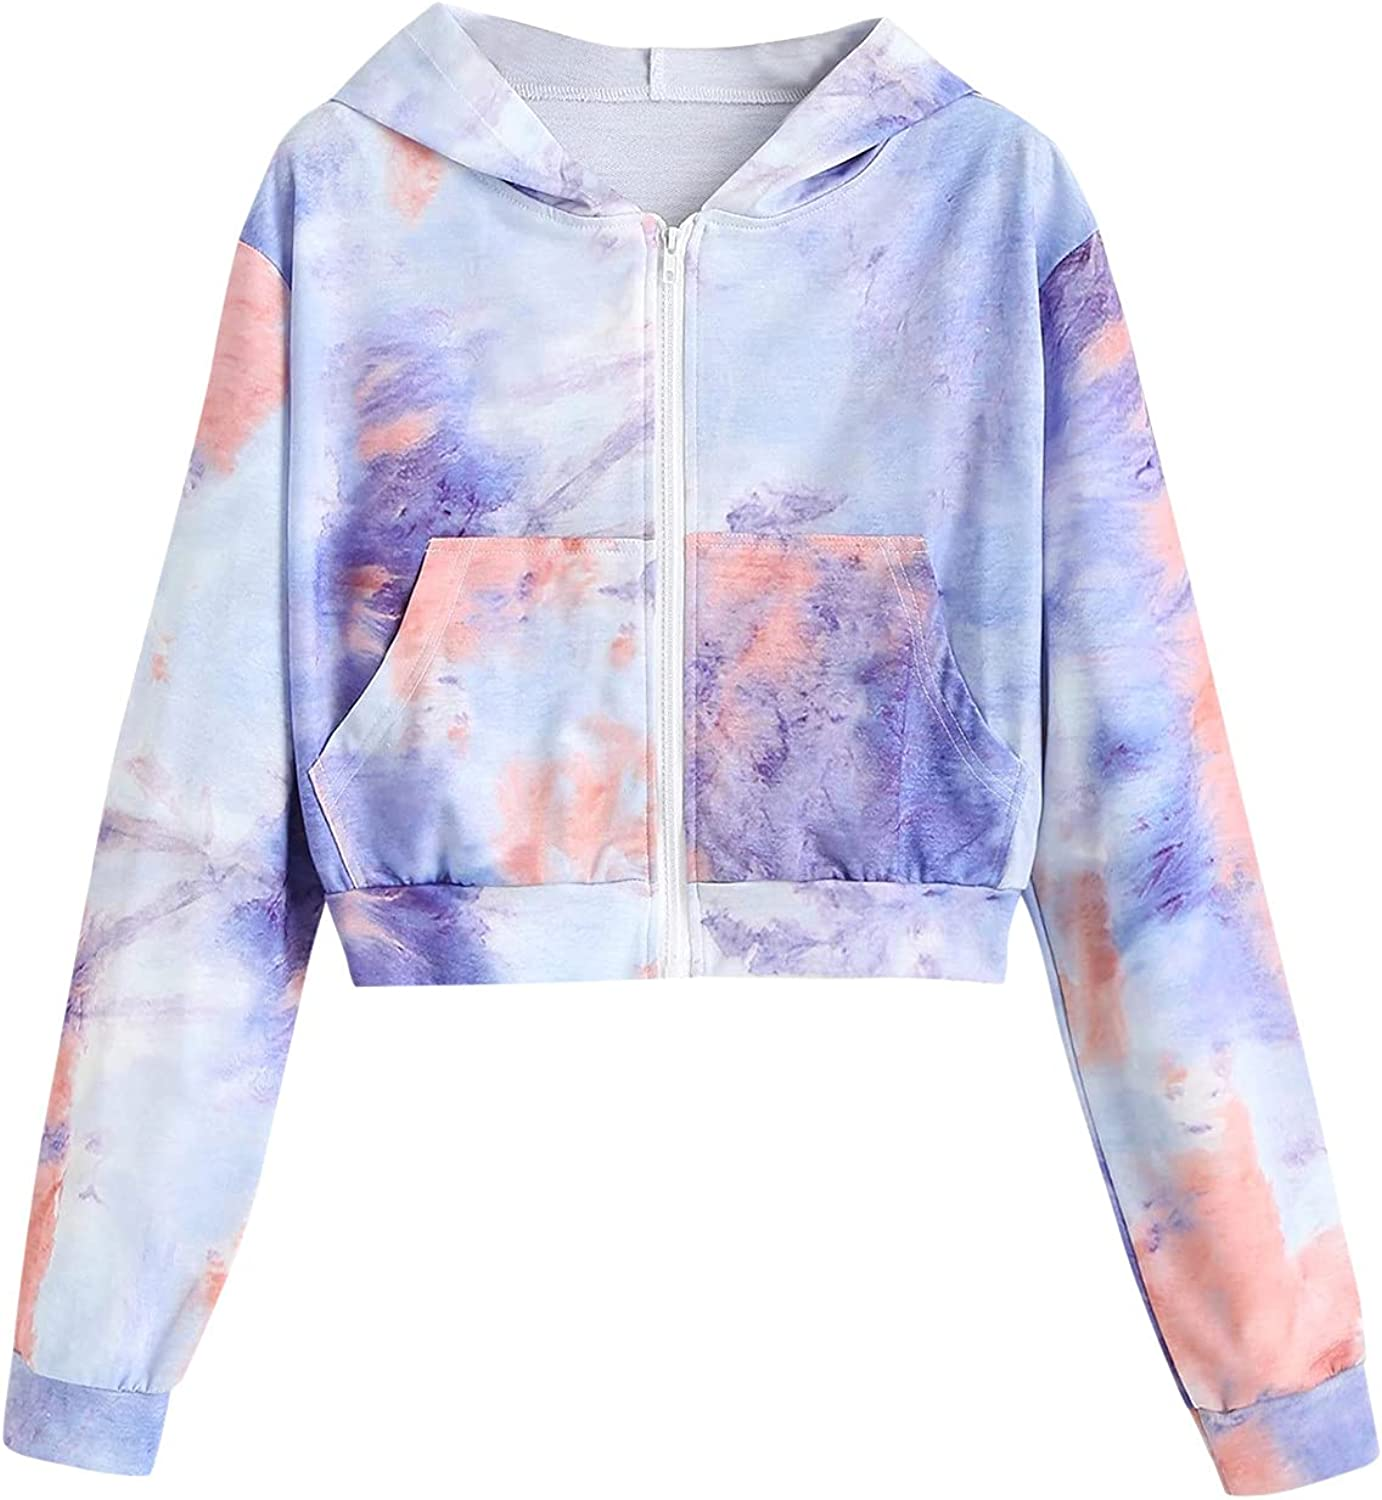 Lousioa Women's Tie-Dye Zip Up Pockets Sweatshirt Sales of SALE items from new works Some reservation Long with Slee